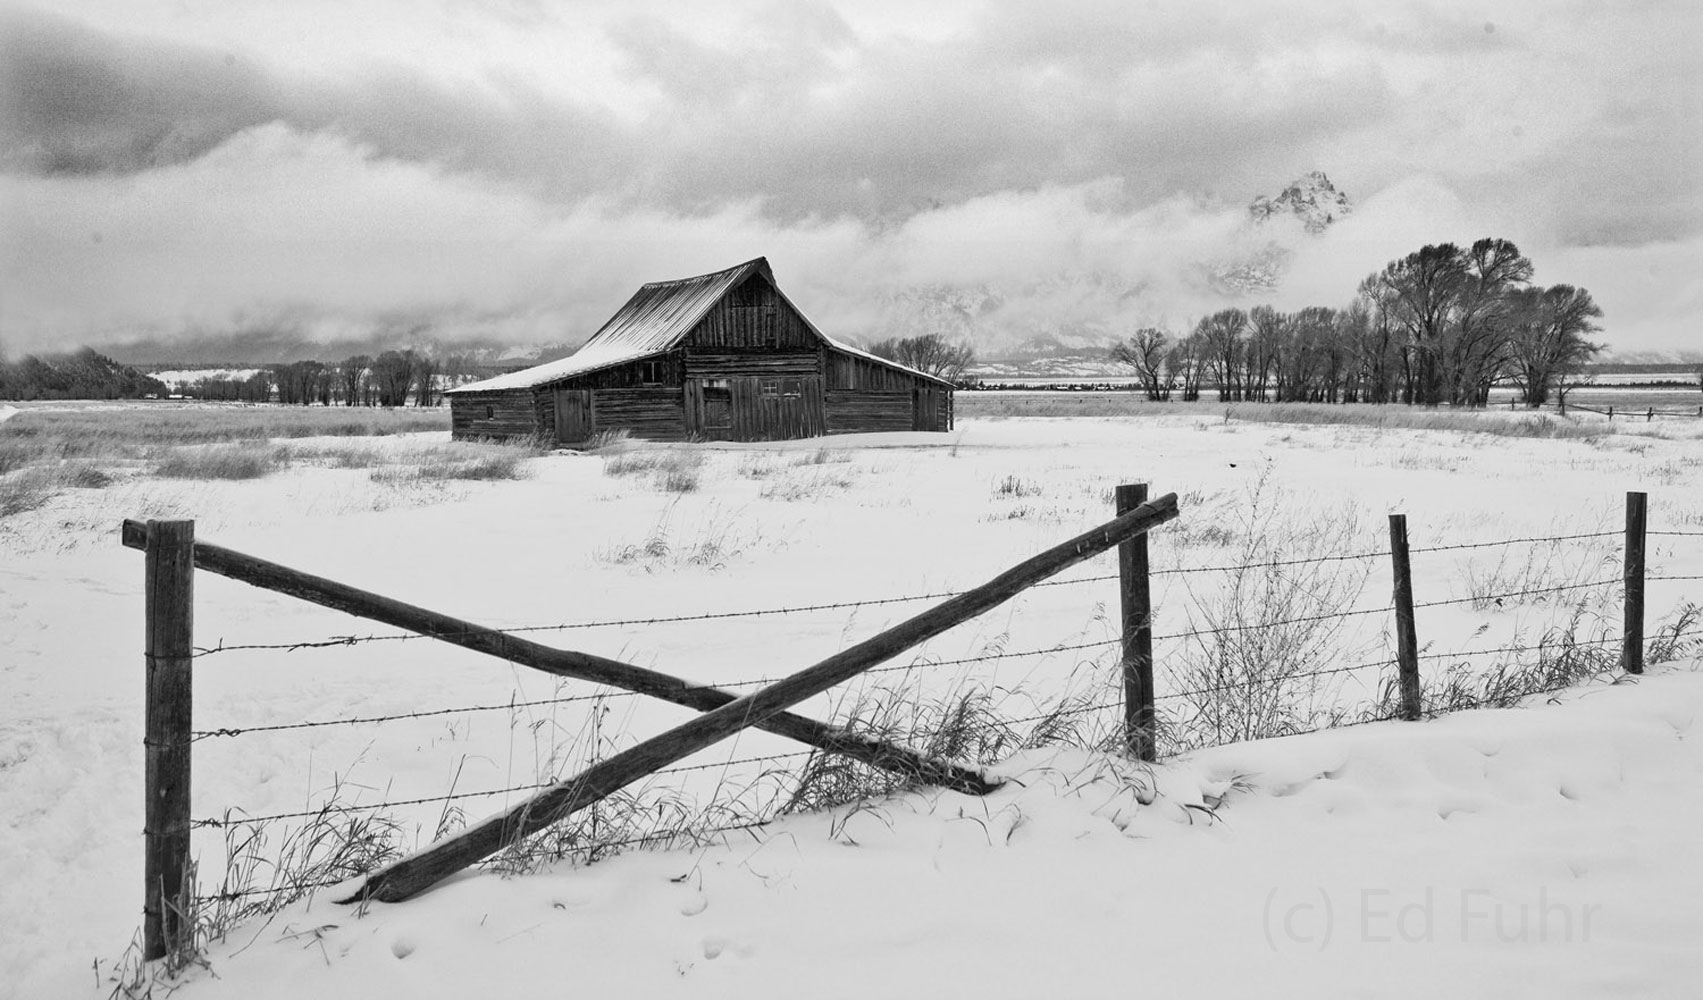 moulton barn, tetons, winter, storm, photo